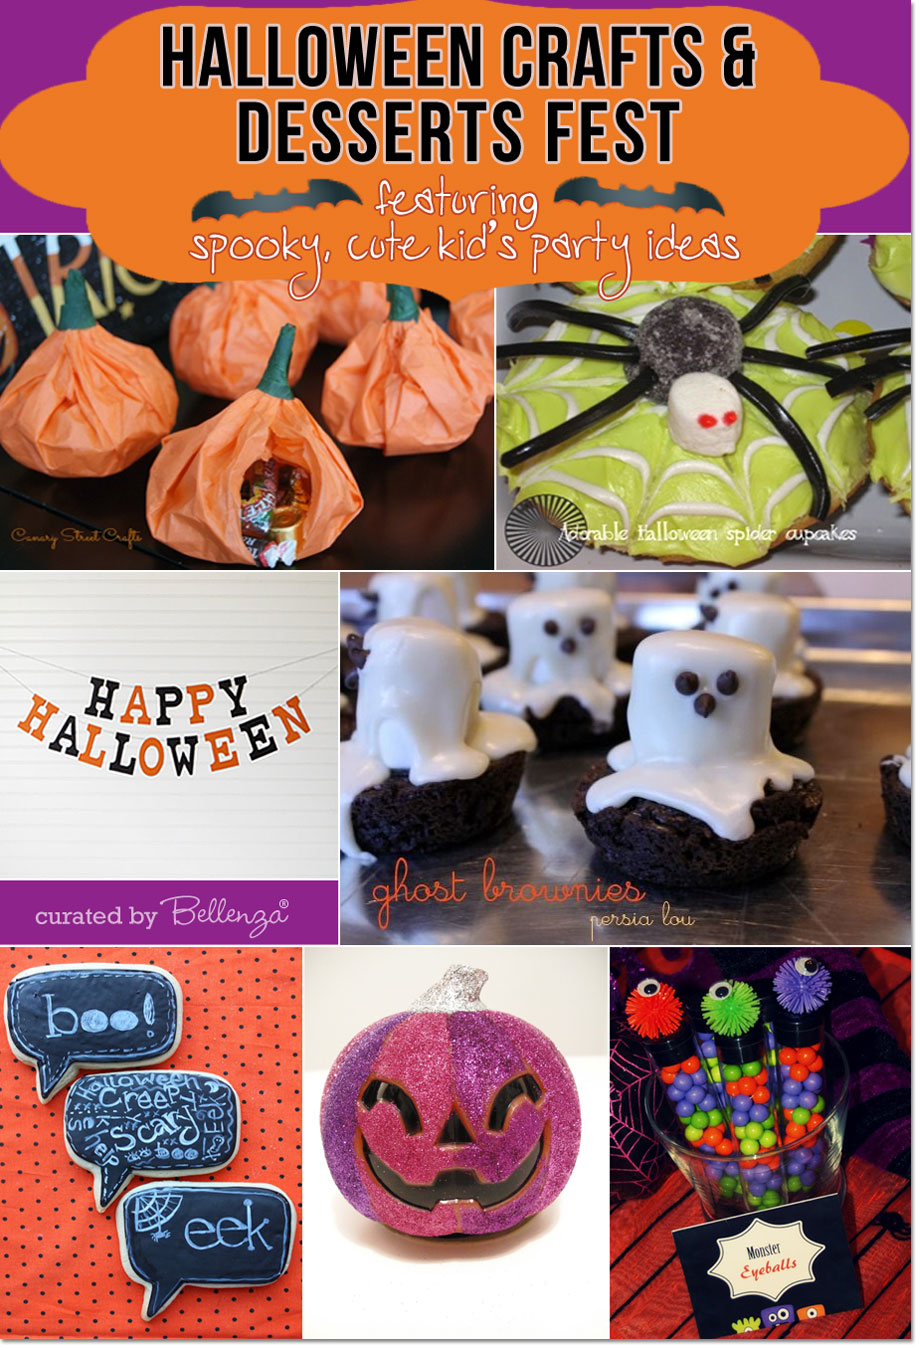 Spooky, Cute Party Ideas for a Halloween Children's Party